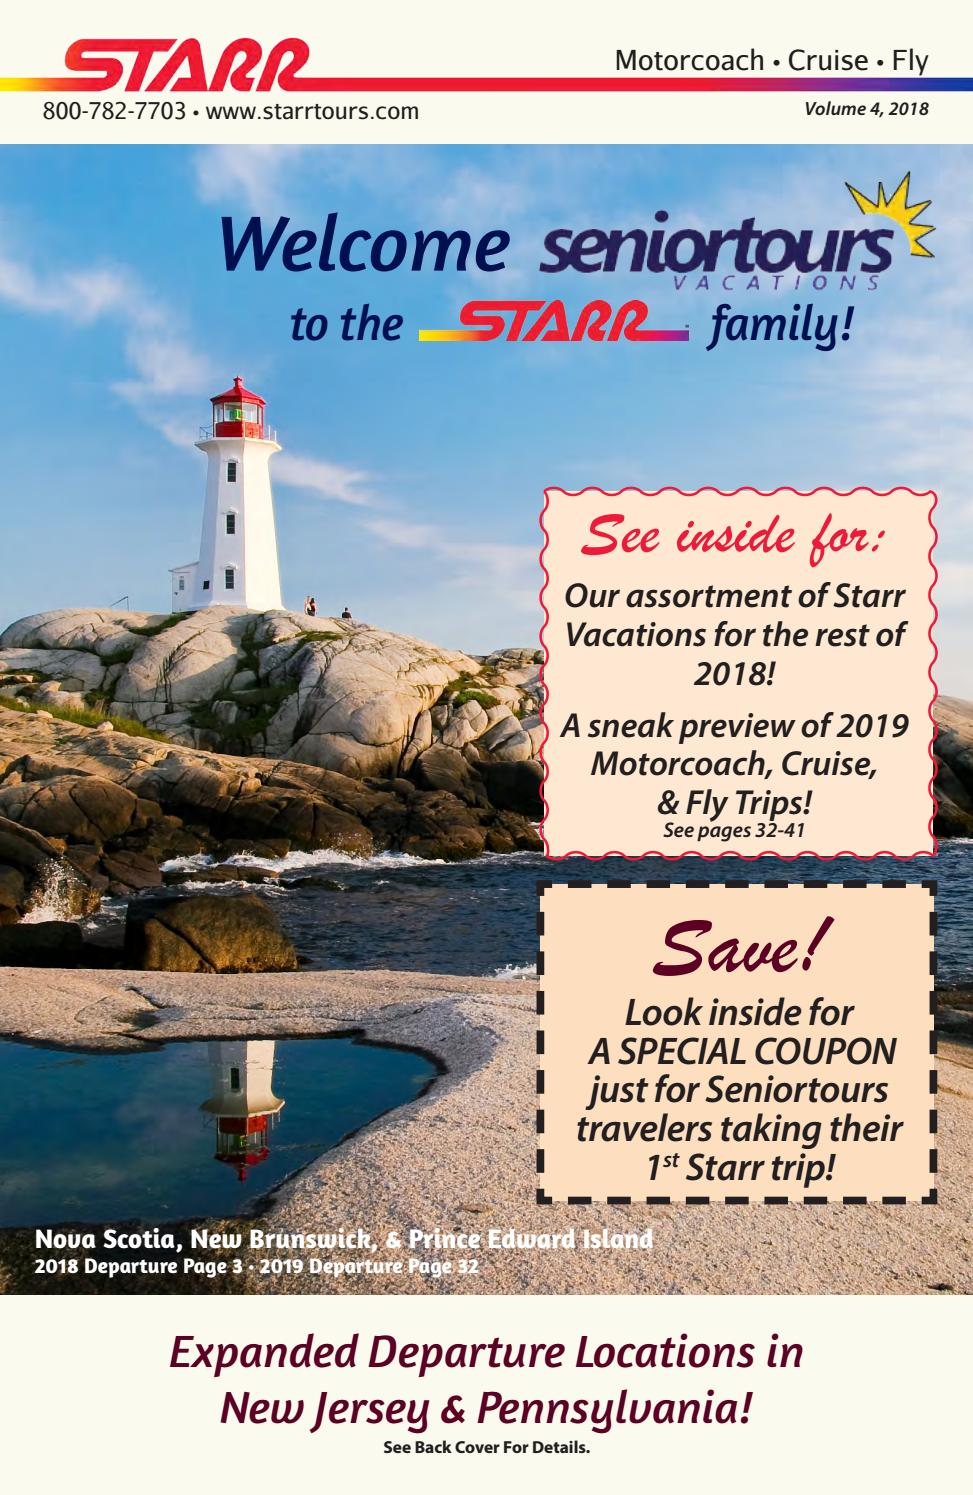 Starr vacations #4 may 2018 Seniortours by Starr Tours - issuu